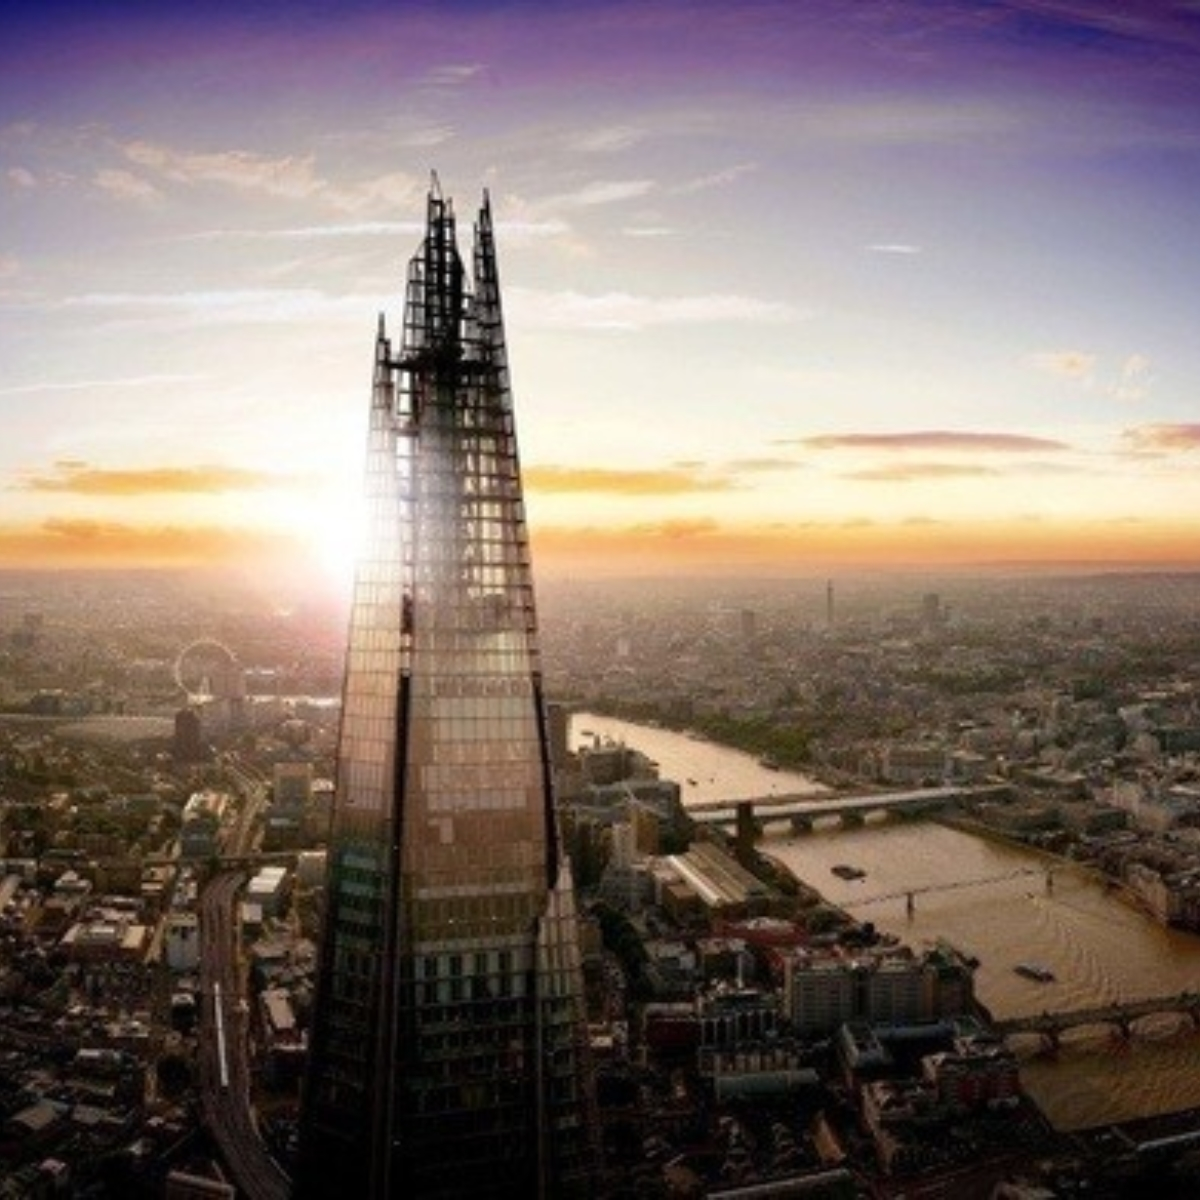 The View from The Shard - Winter Saver 2020 Images